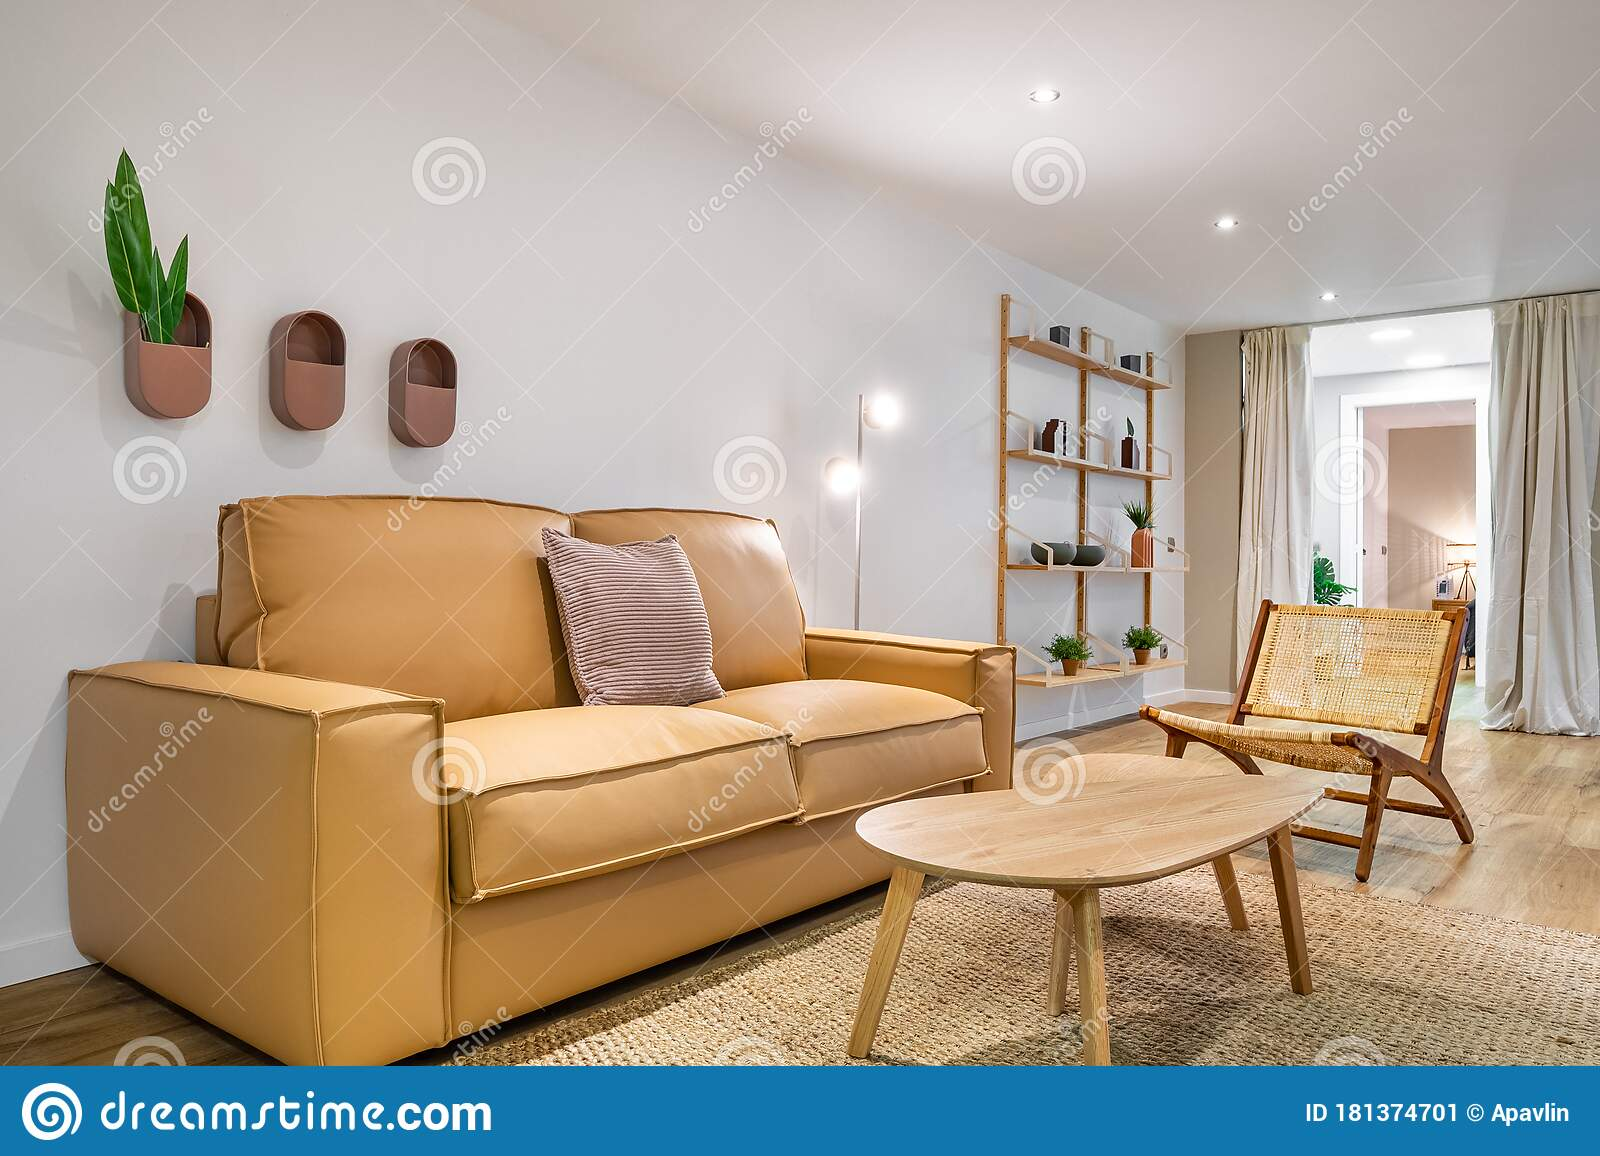 Modern Boho Interior Of Living Room At Cozy Apartment With Beige Sofa Wooden Table Wicker Chair Stylish Home Decor Stock Image Image Of Beige Decoration 181374701